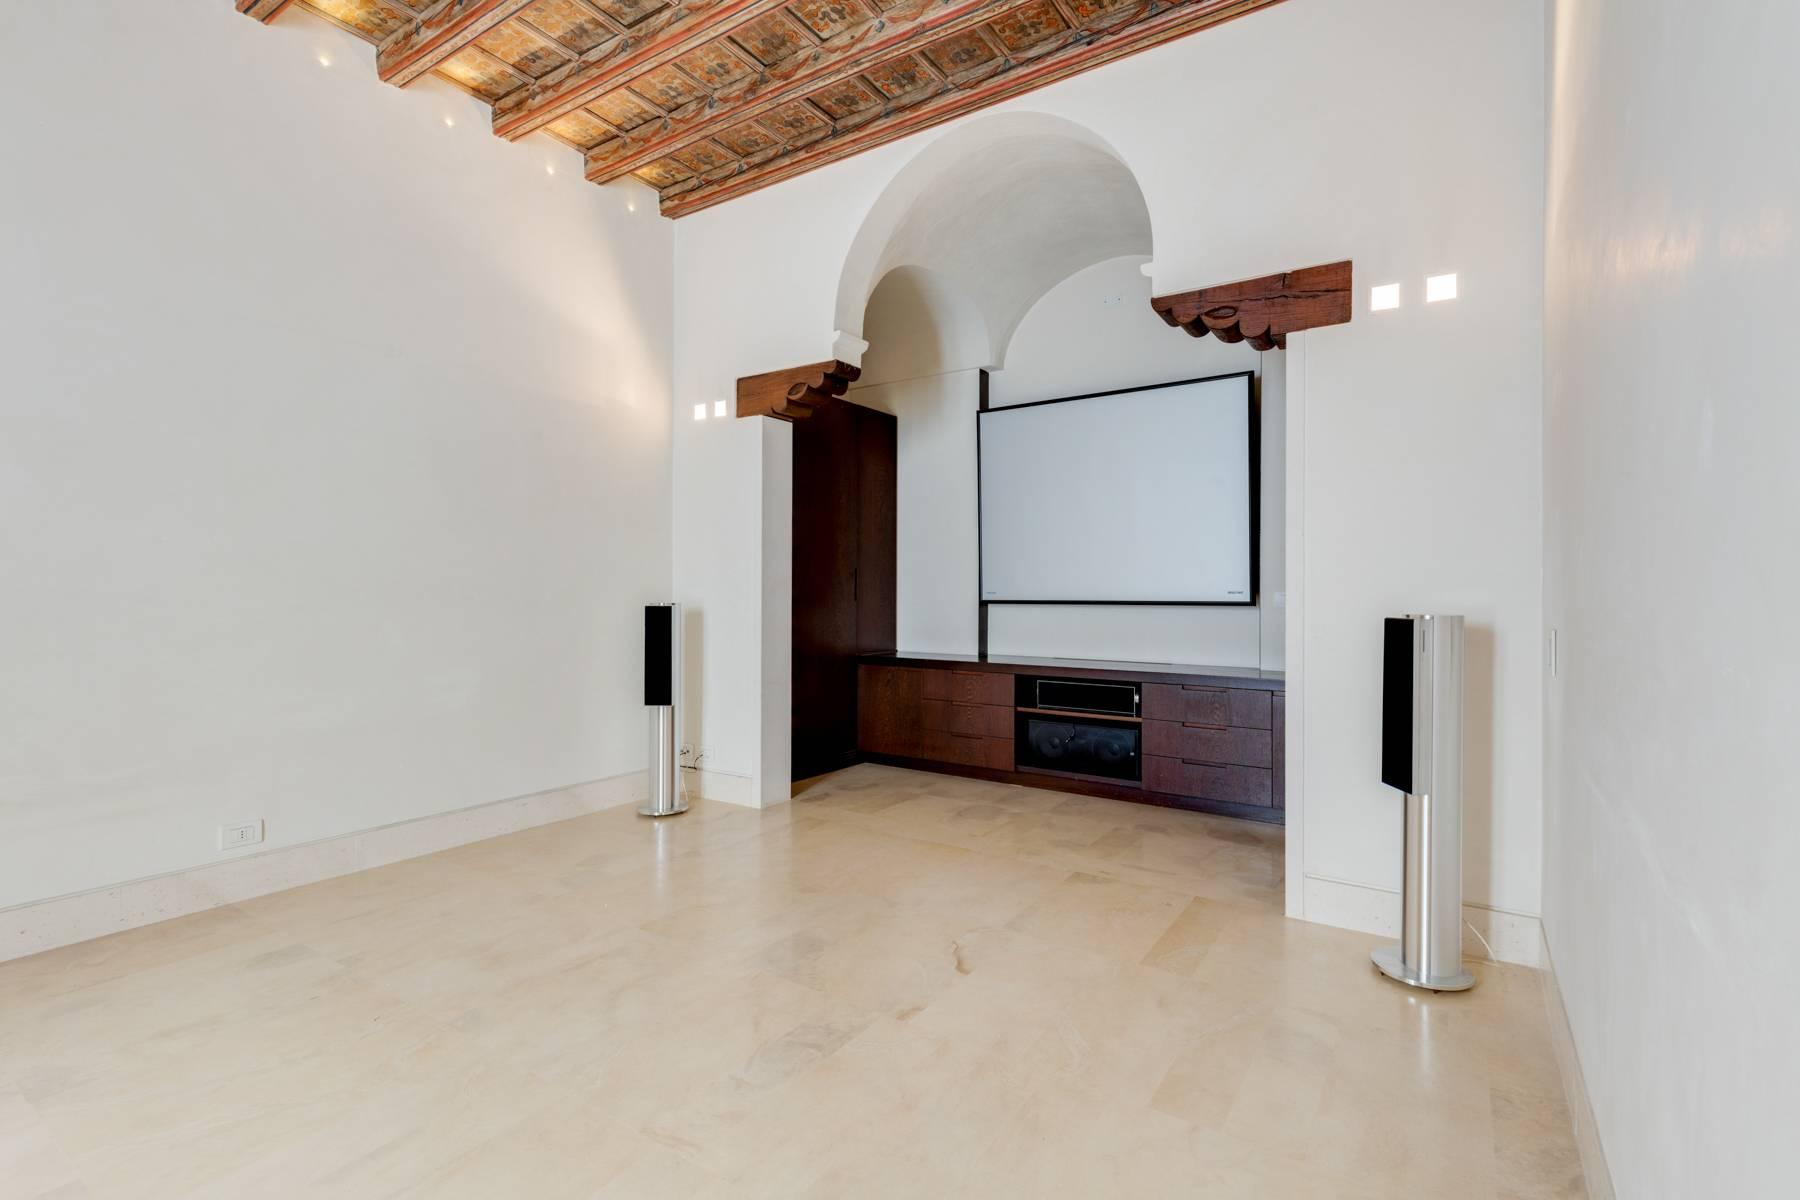 Prestigious detached house in the historic center of Piacenza - 4